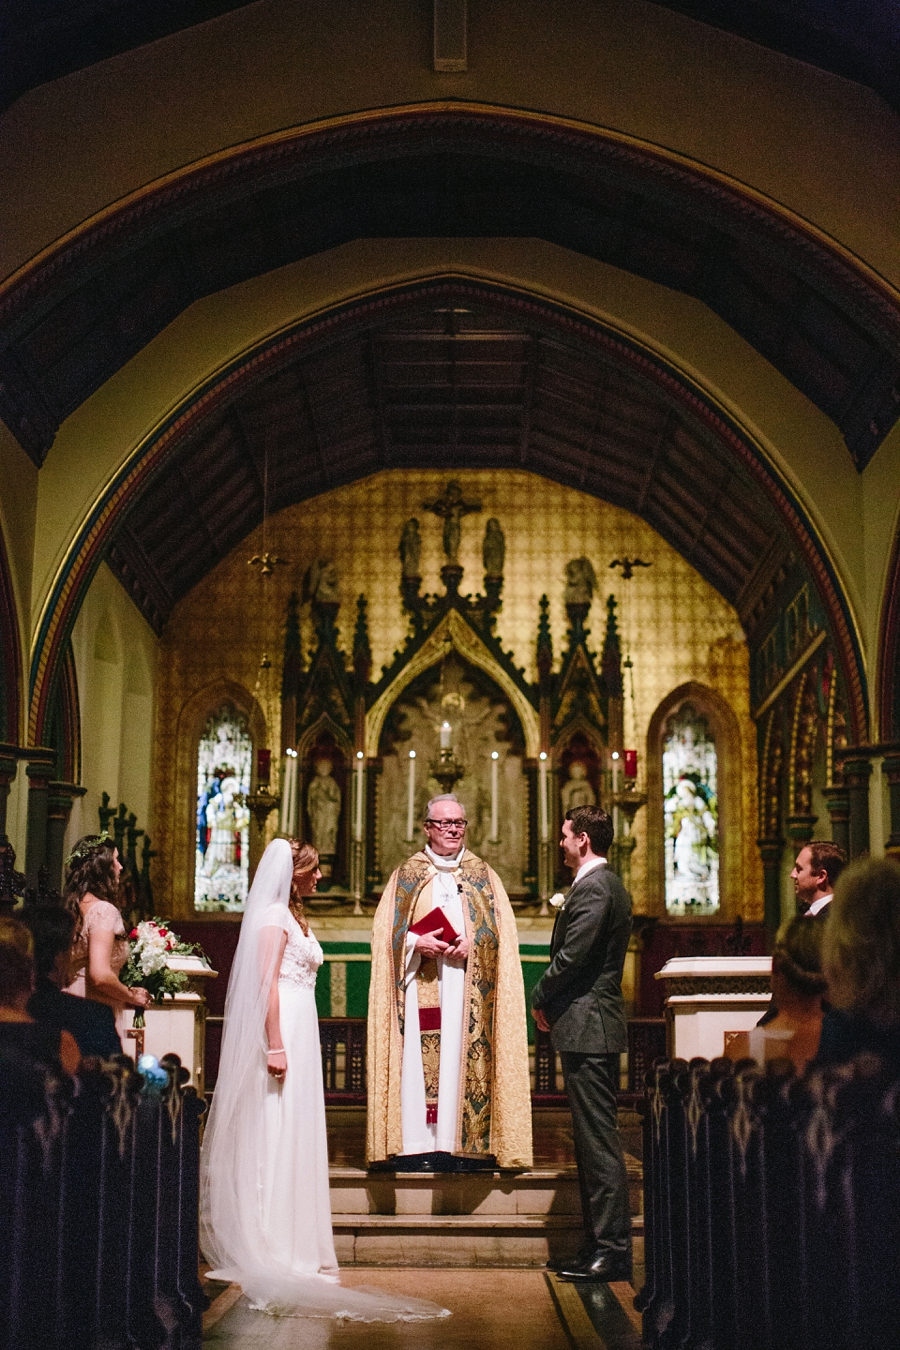 NYC-destination-wedding-photographer-tribeca-intimate-church_0019.jpg